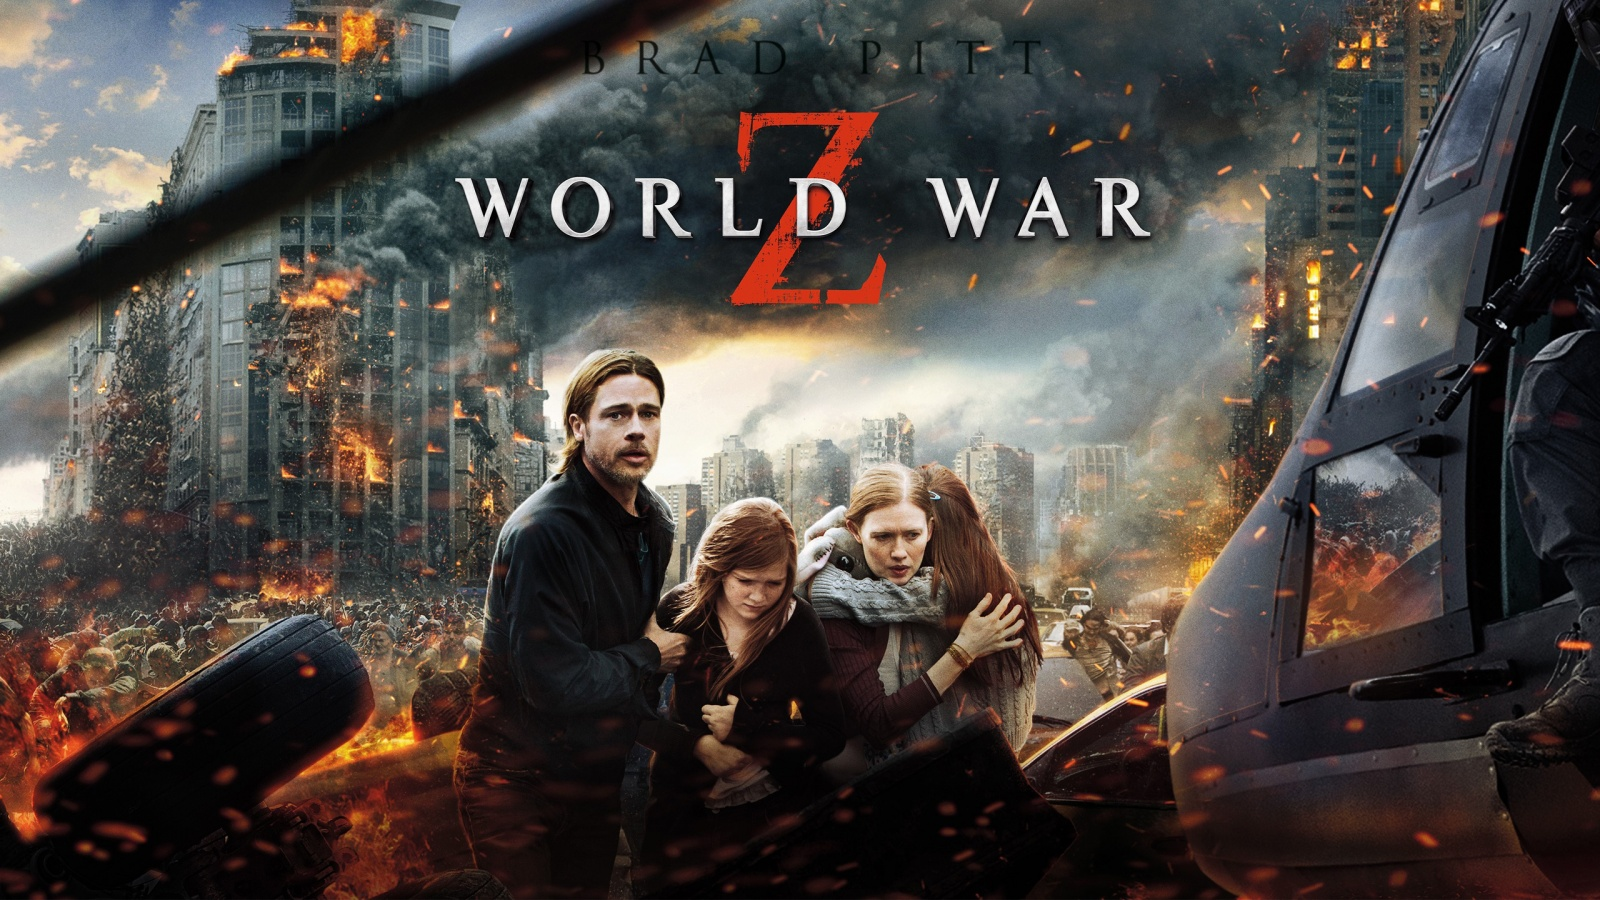 World war z high quality hd wallpapers all hd wallpapers world war z high quality hd wallpapers voltagebd Image collections